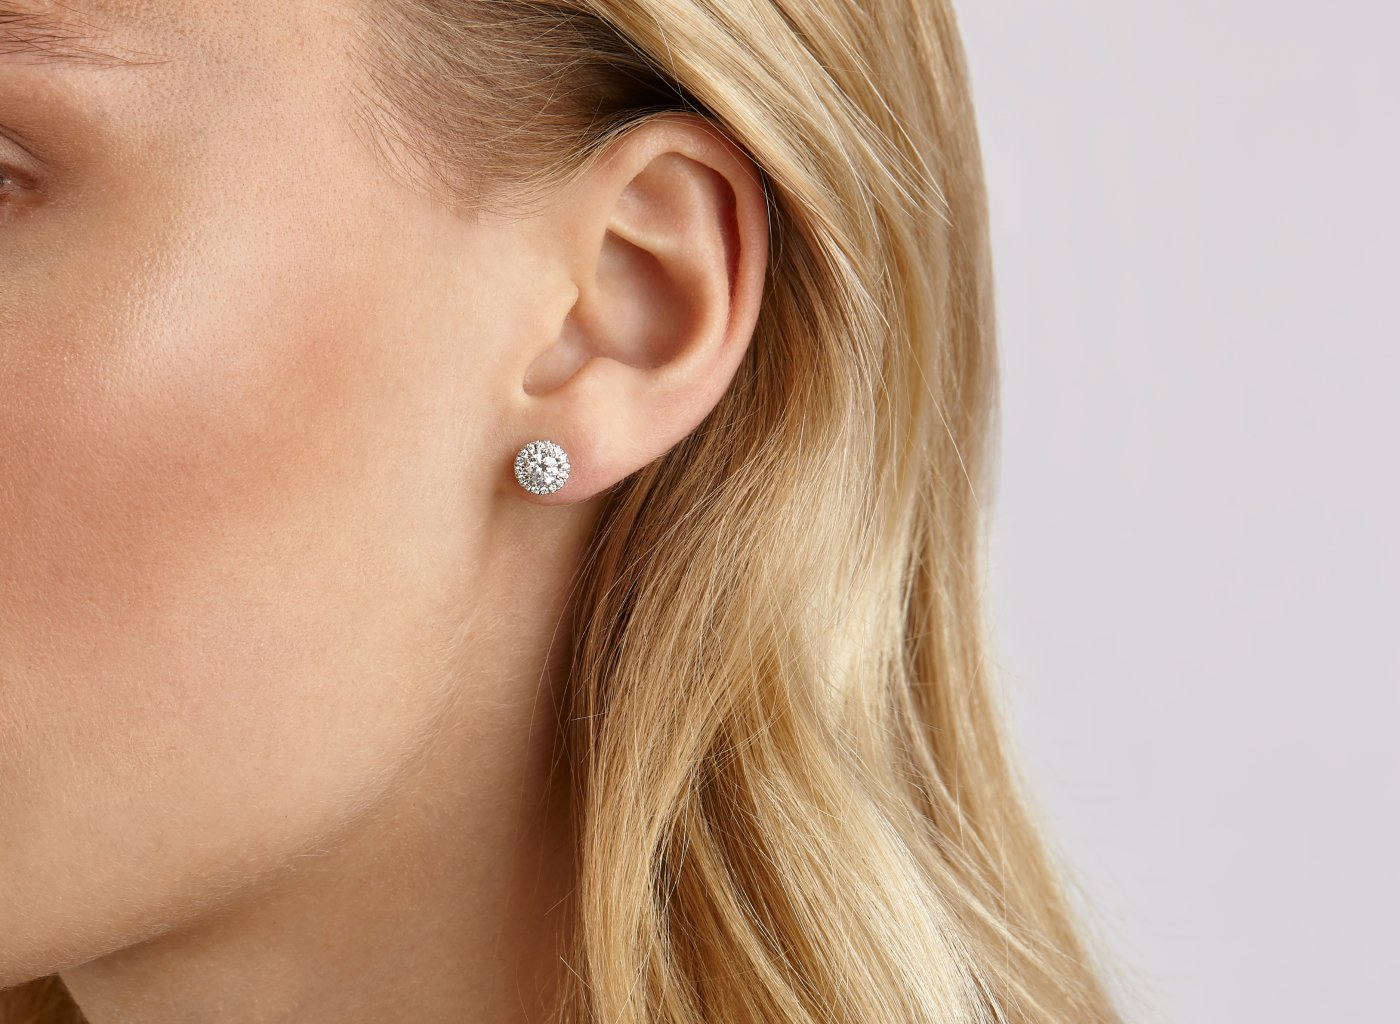 On model view Halo 1 carat earrings with white diamonds